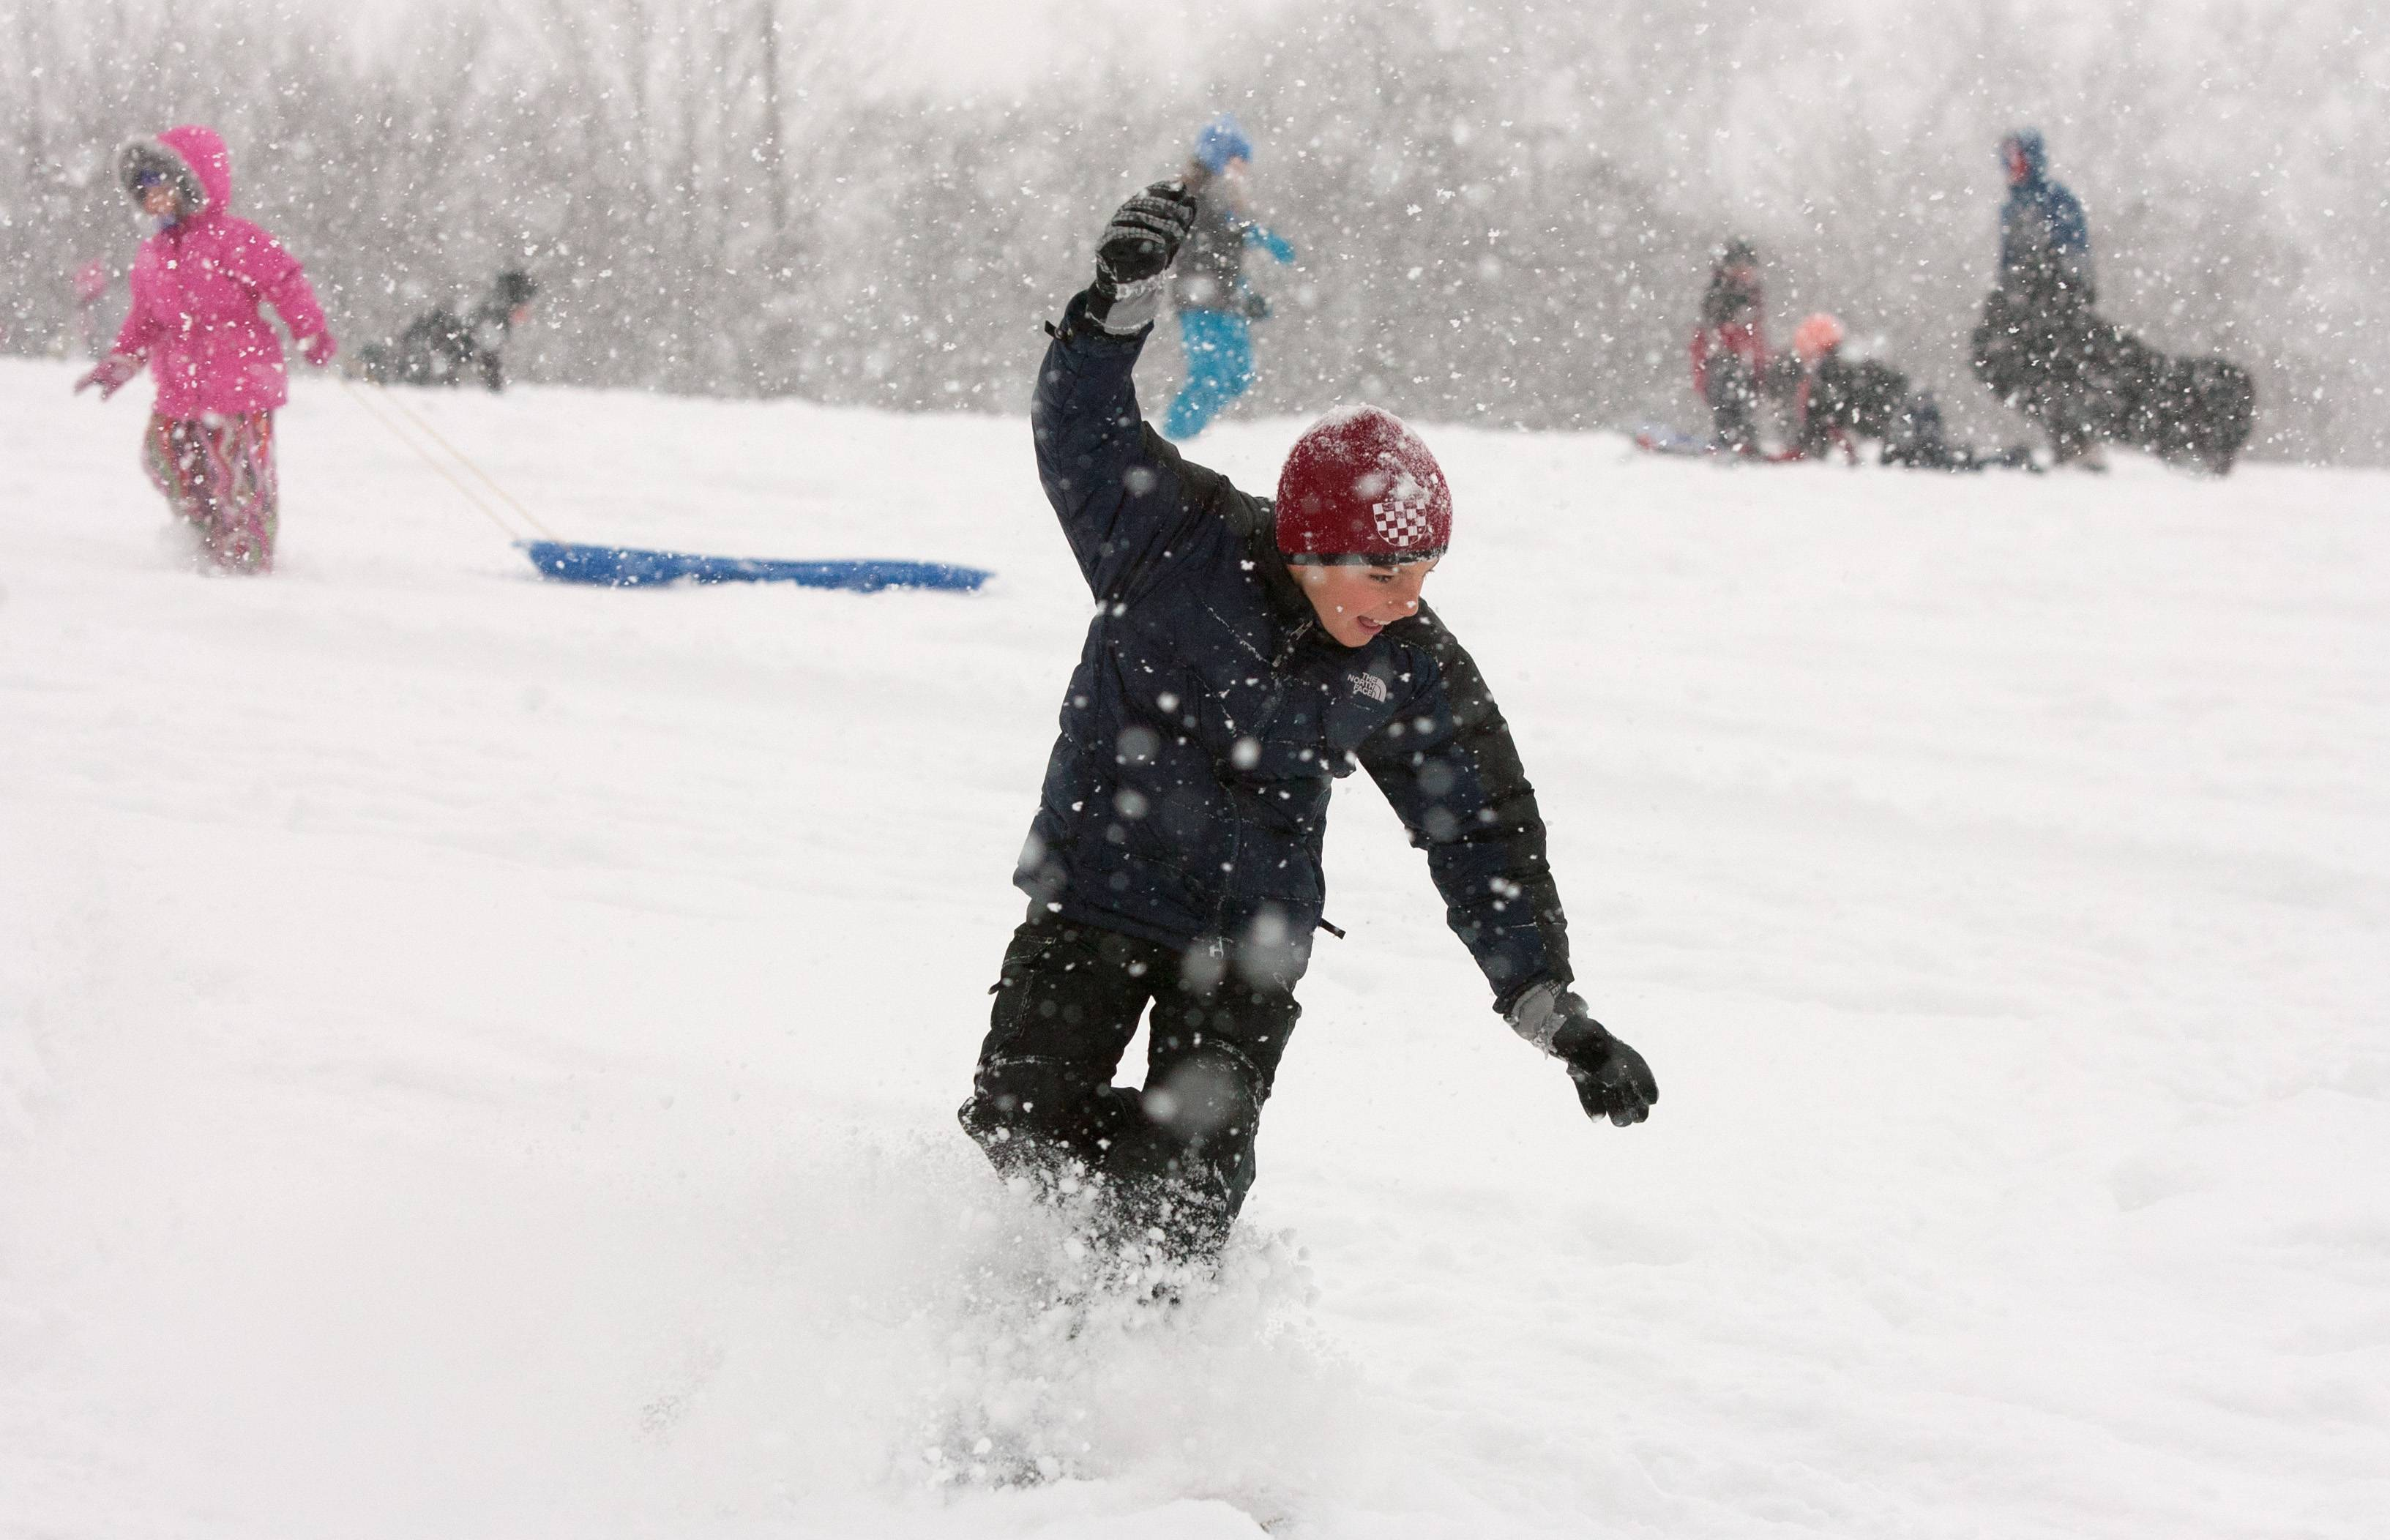 Matt Peso of Western Springs enjoys snow boarding down a hill next to the Oak Brook Public Library.